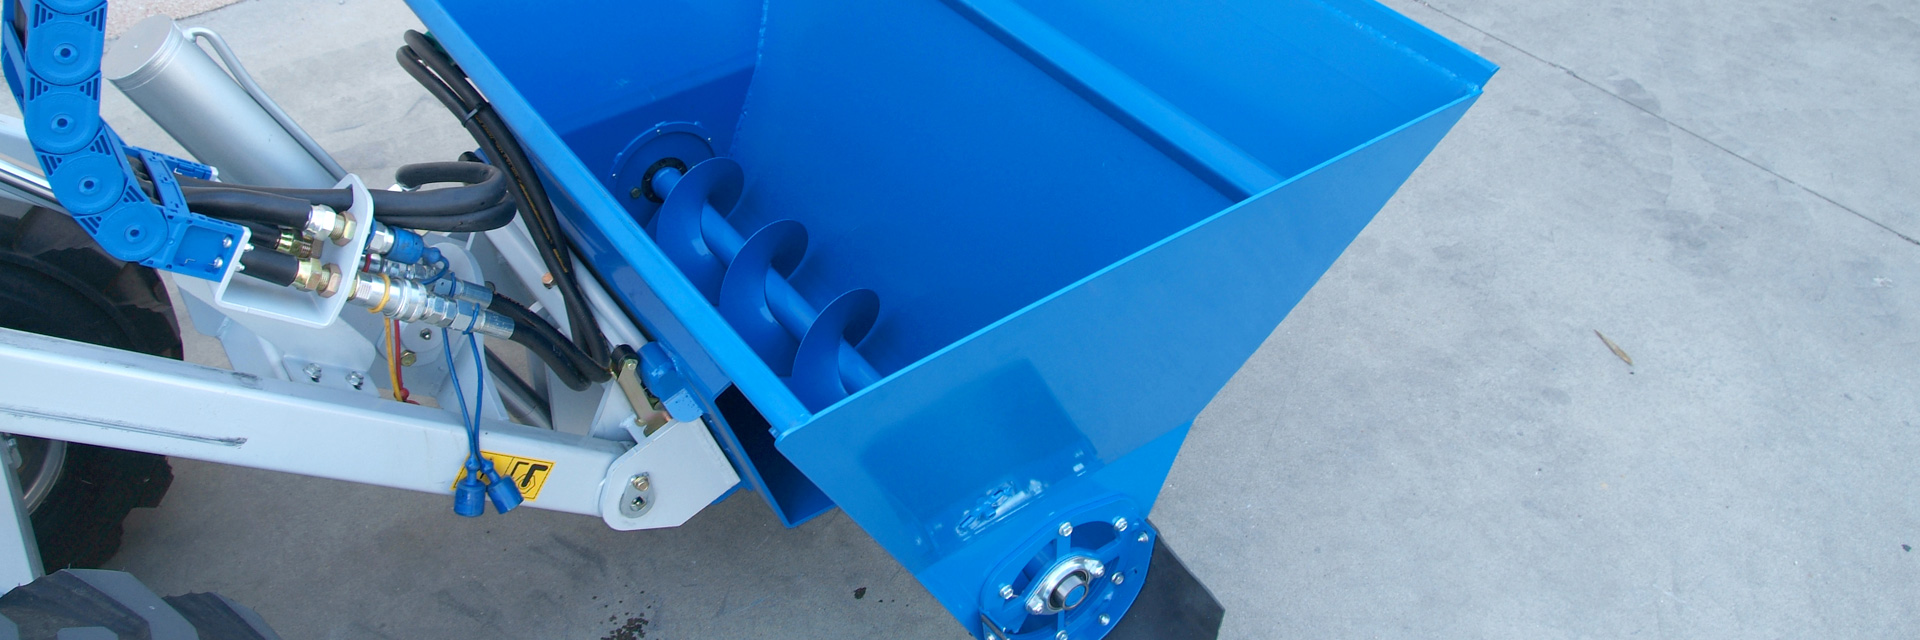 Multione-feed-dispenser for mini loaders